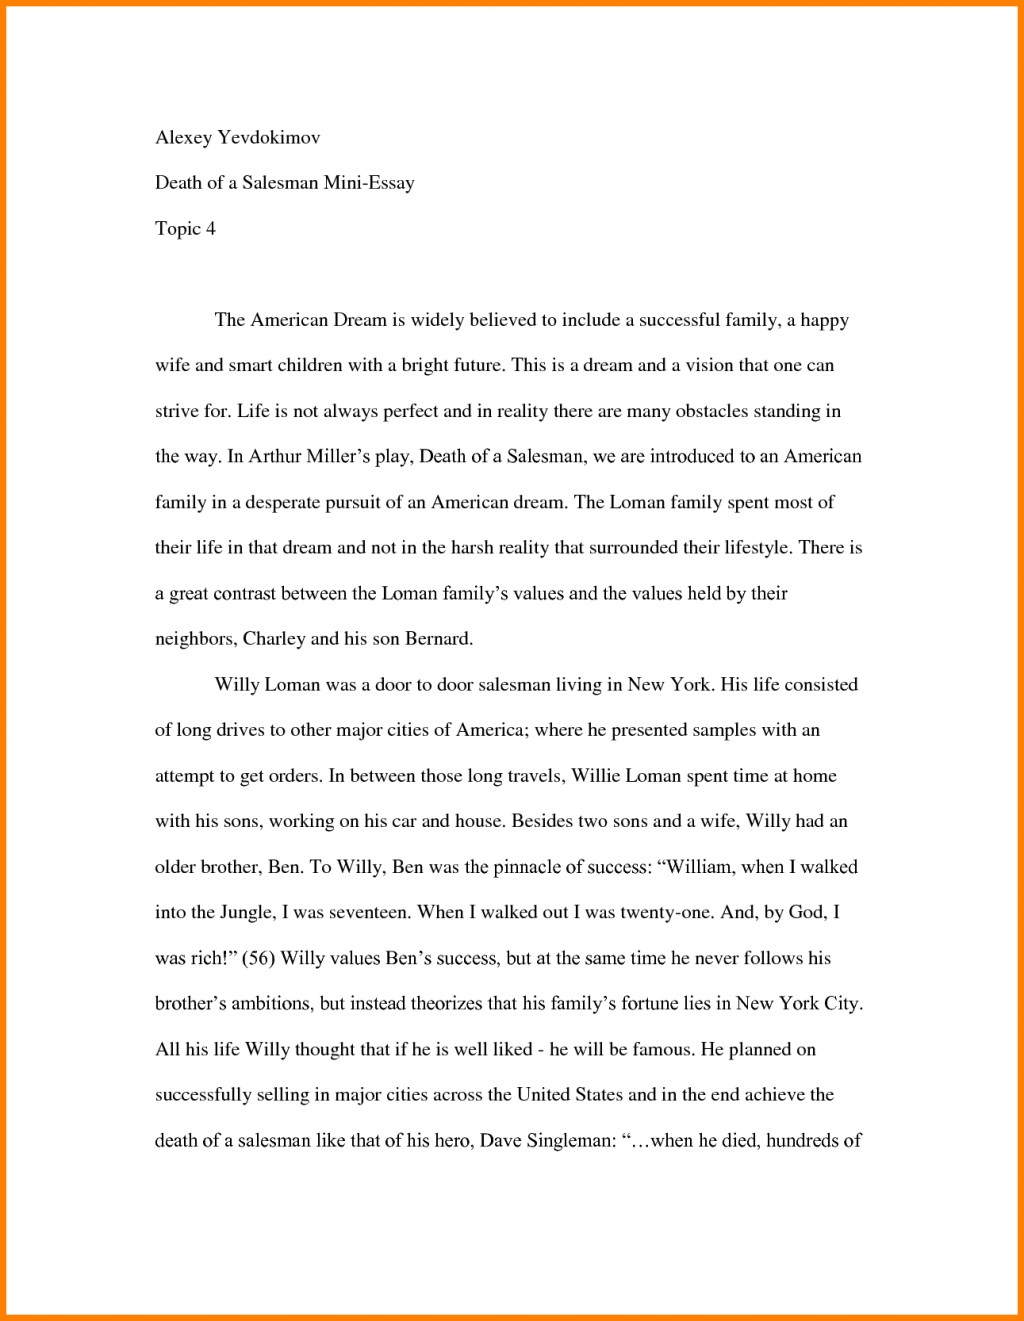 004 Essay Example How To Start Off An About Yourself Amazing With A Hook Quote Analysis On Book Large